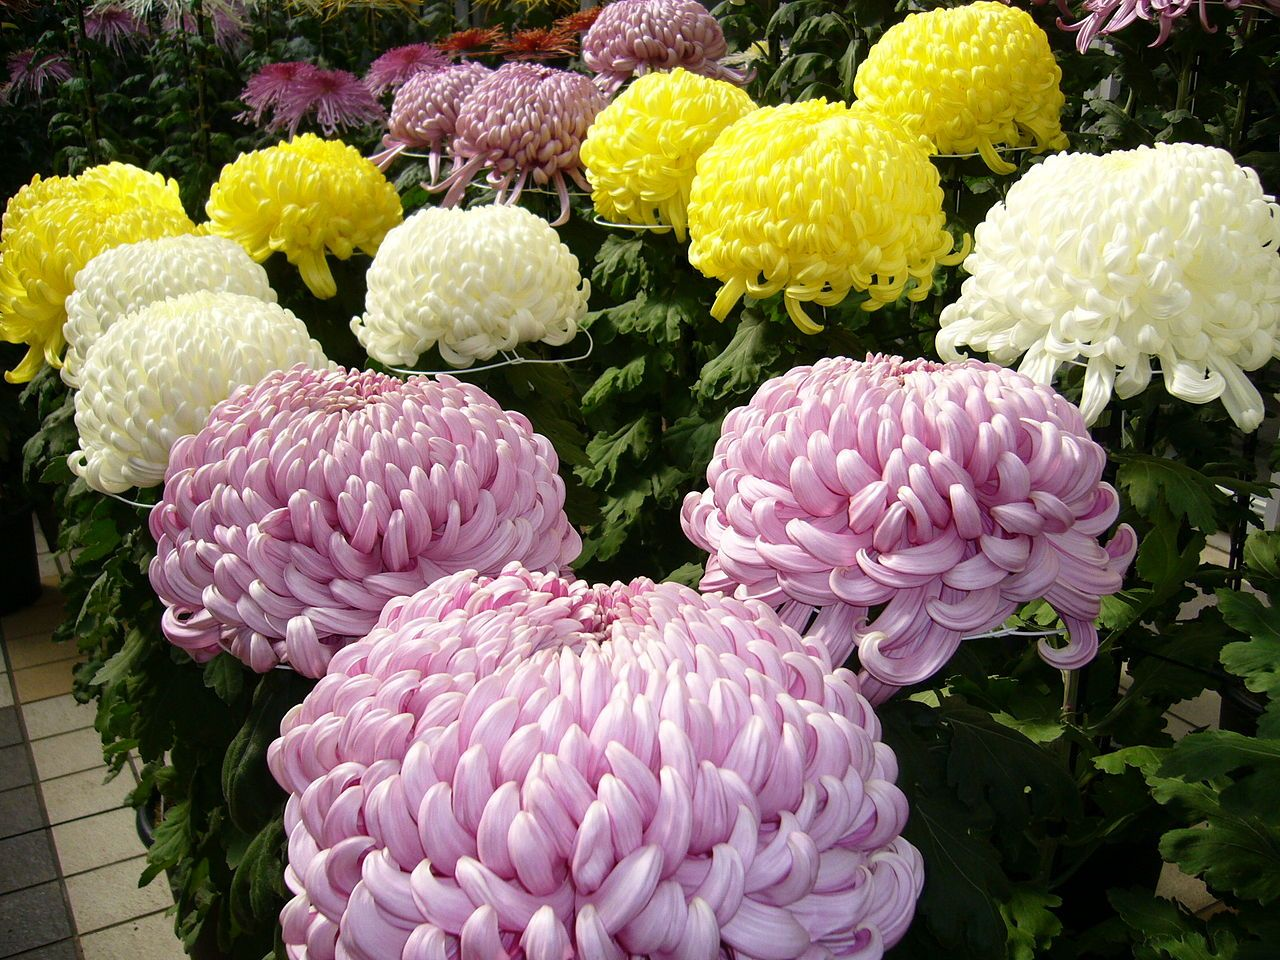 The Chrysanthemum Is Also The National Flower Of Japan Chrysanthemum Plant Chrysanthemum Morifolium Flowers